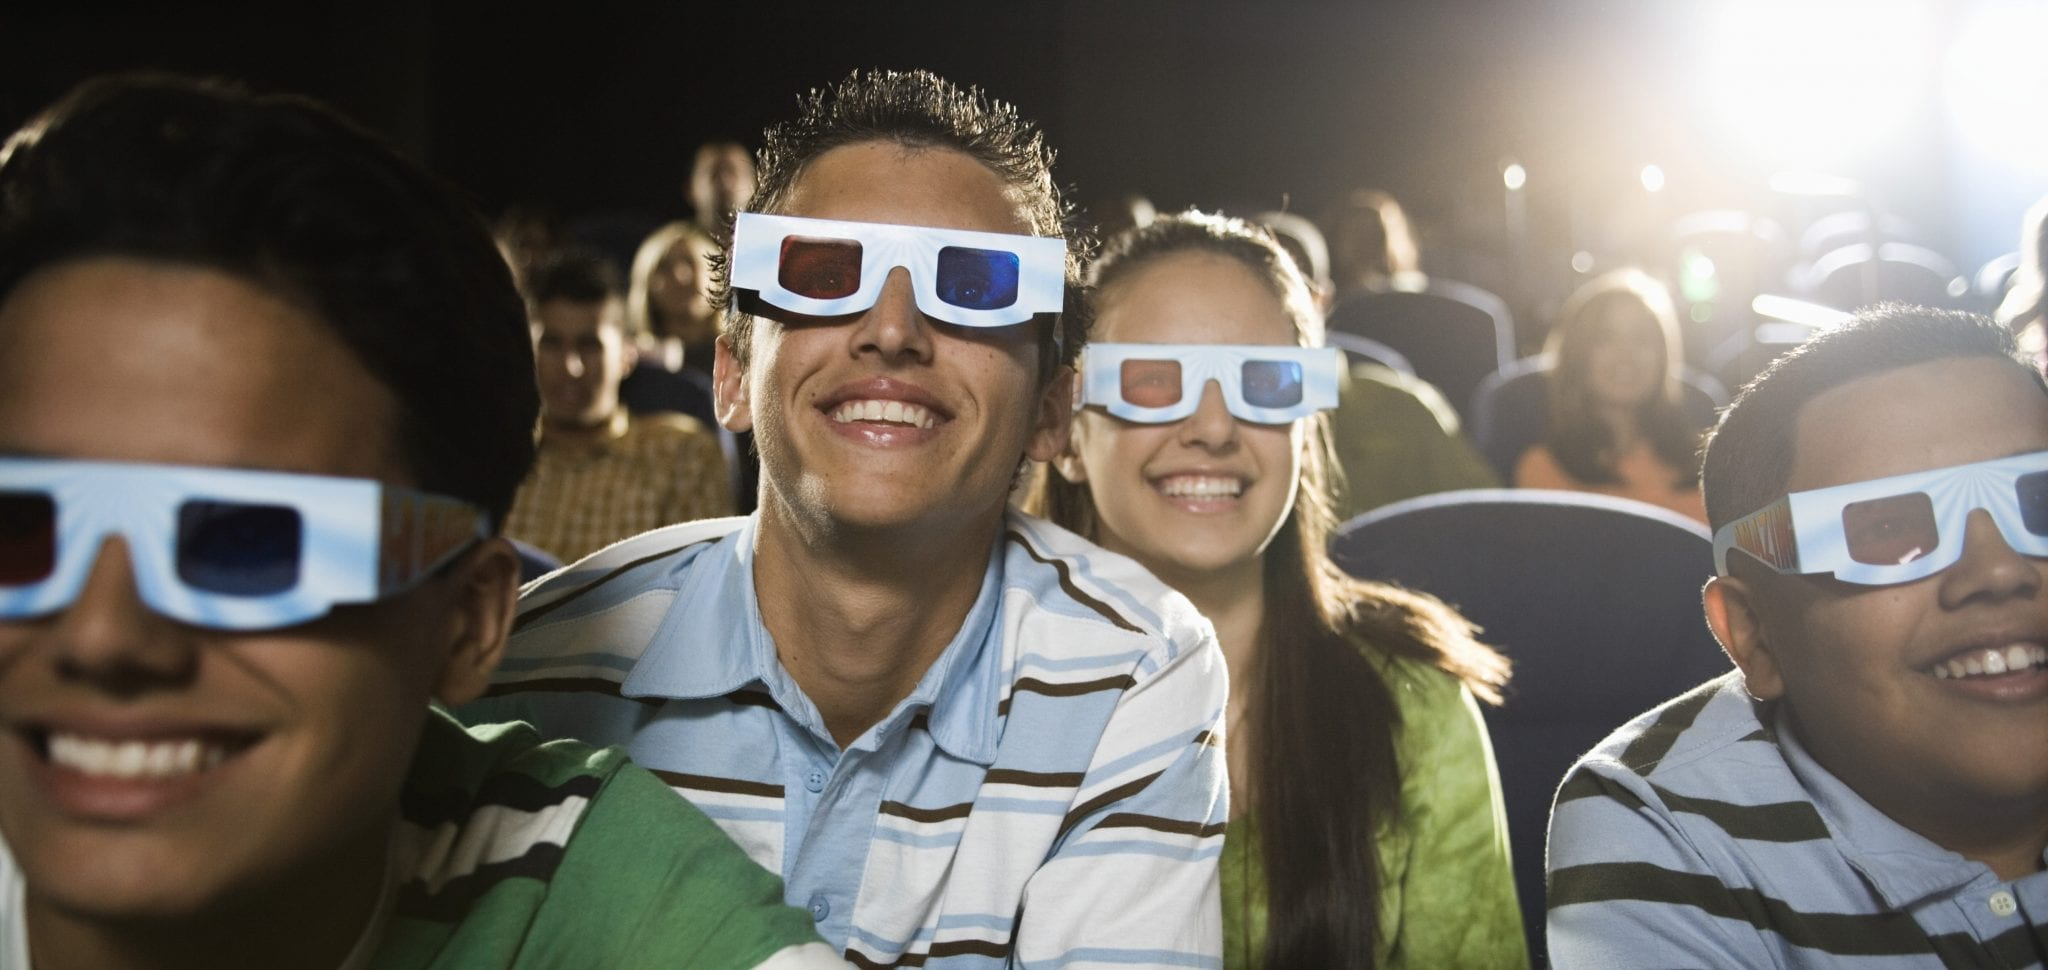 Movie ongoers are wearing 3D glasses & smiling